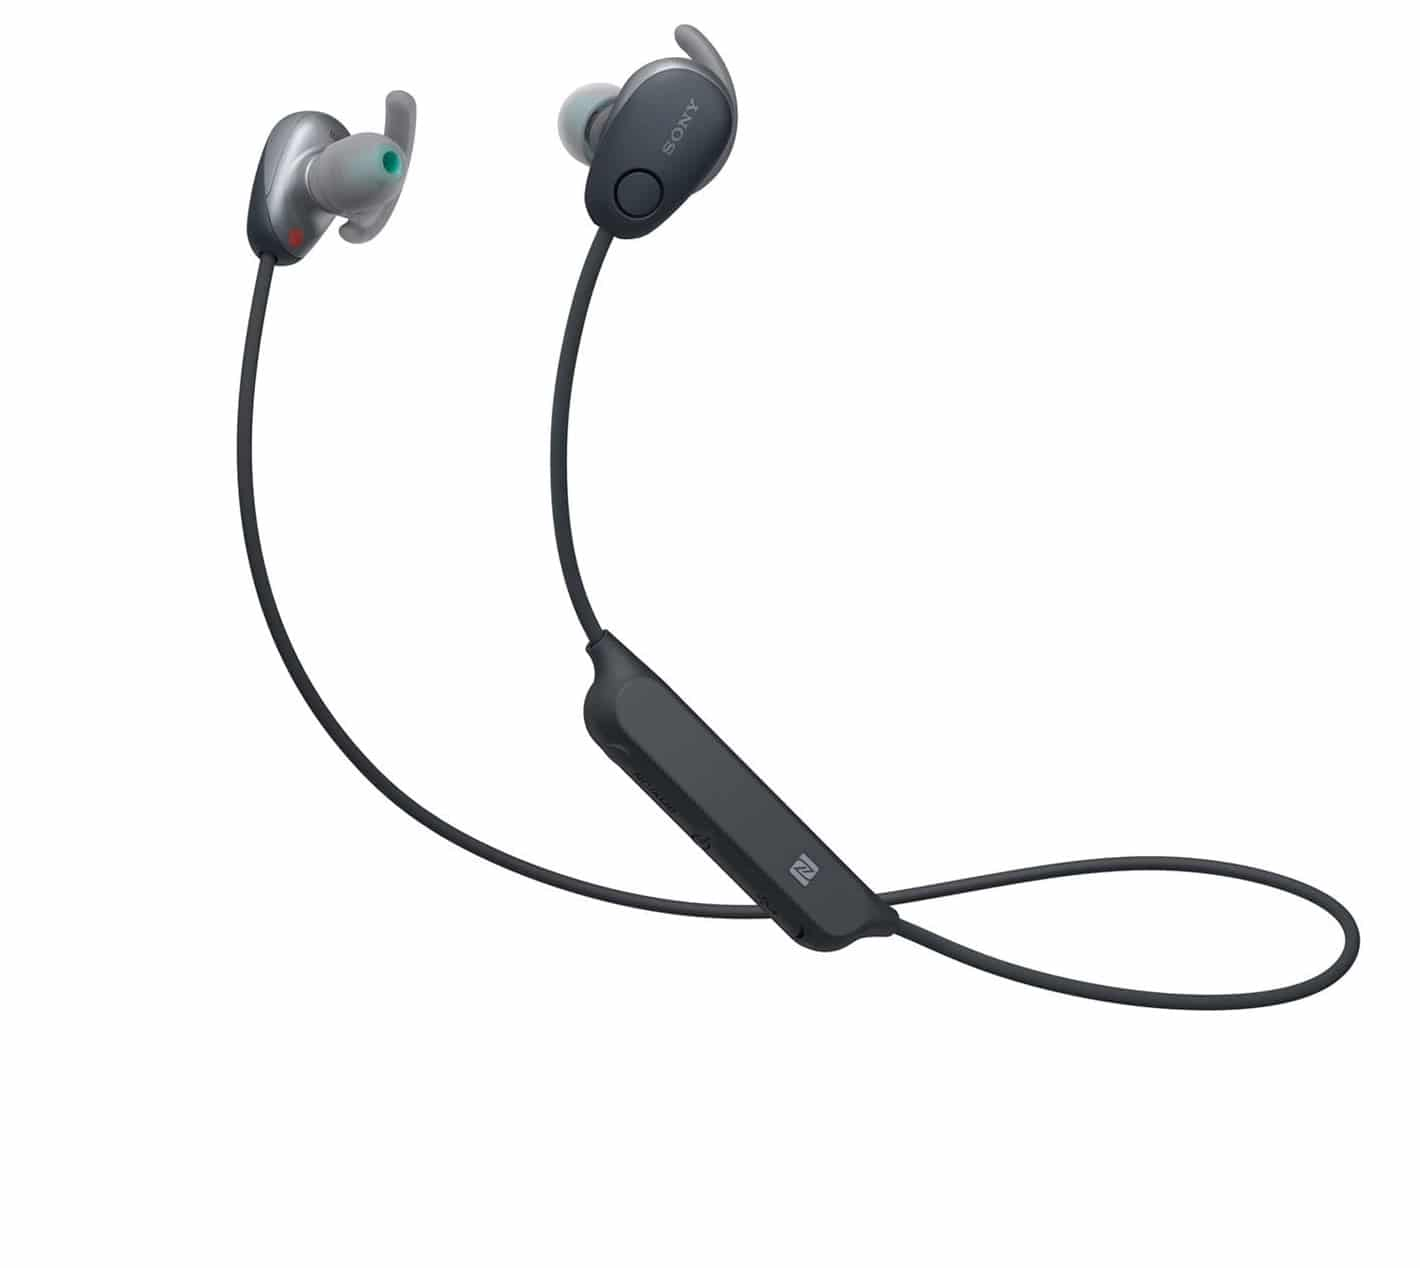 Sony WI-SP600N Wireless Earbuds: A Complete Review